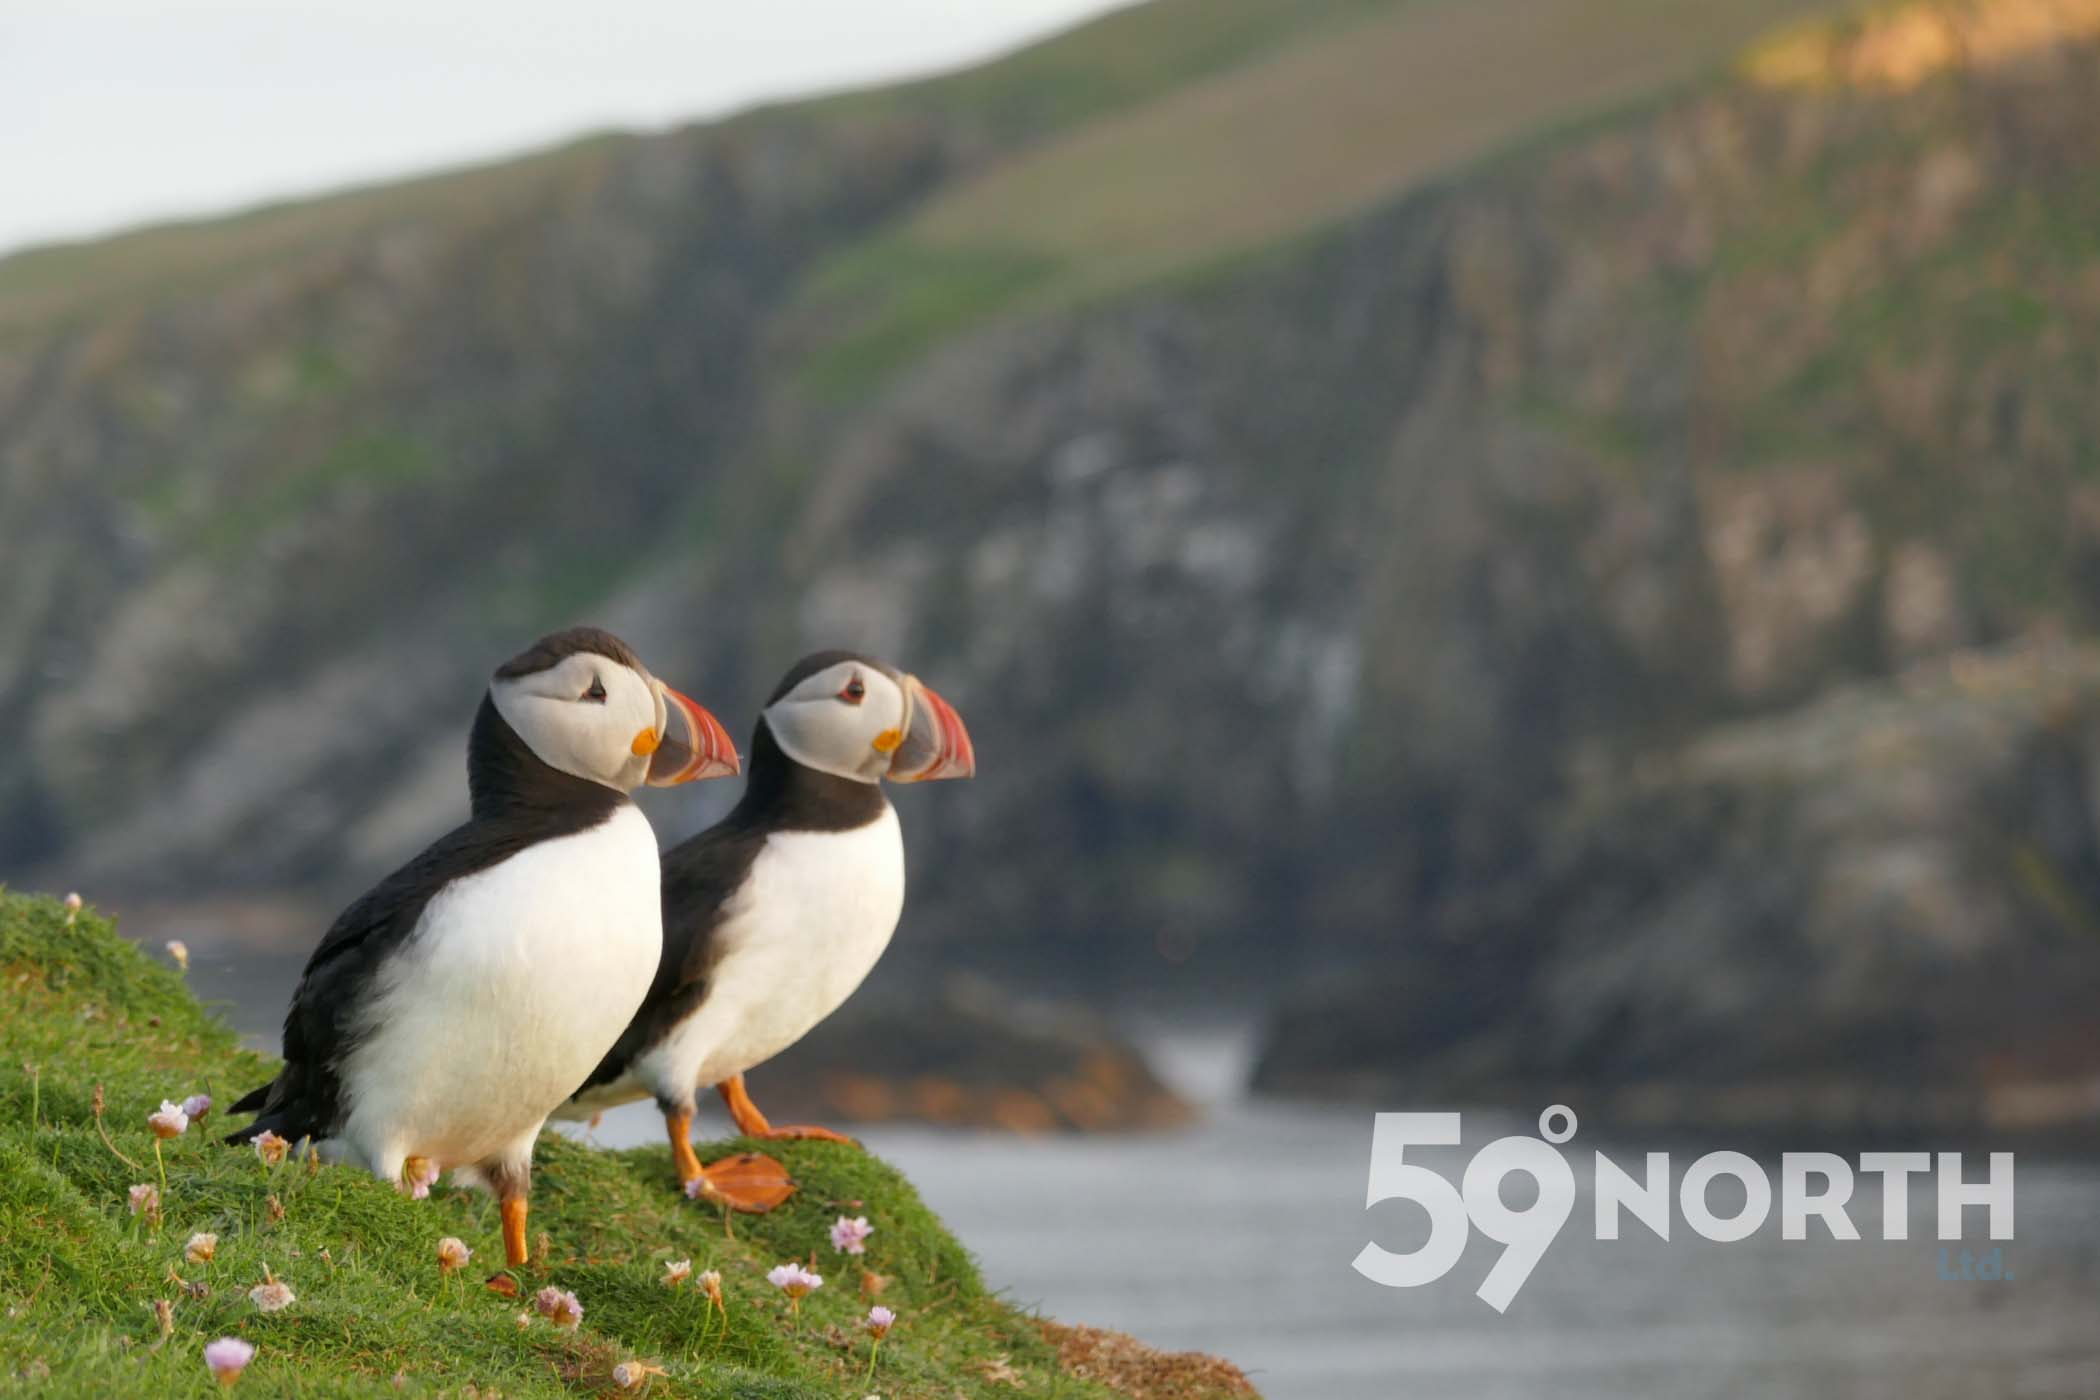 Lots of Puffins and amazing bird life at Fair Isle!!  Leg 8, 2017: Sweden to Scotland 59-north.com